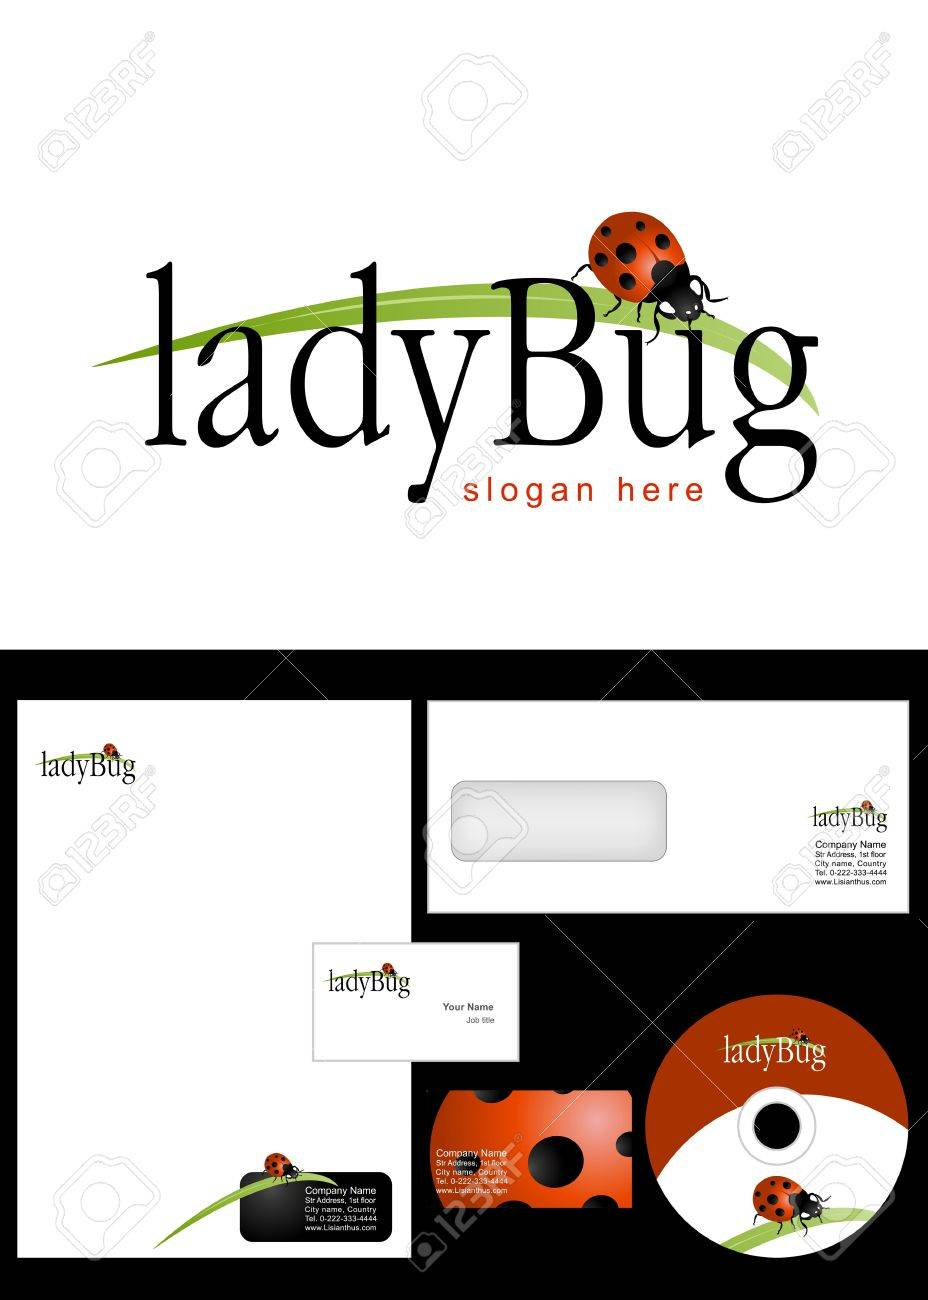 Ladybug Logo Design and corporate identity package including logo, letterhead, business card, envelope and cd label. Stock Vector - 12959792